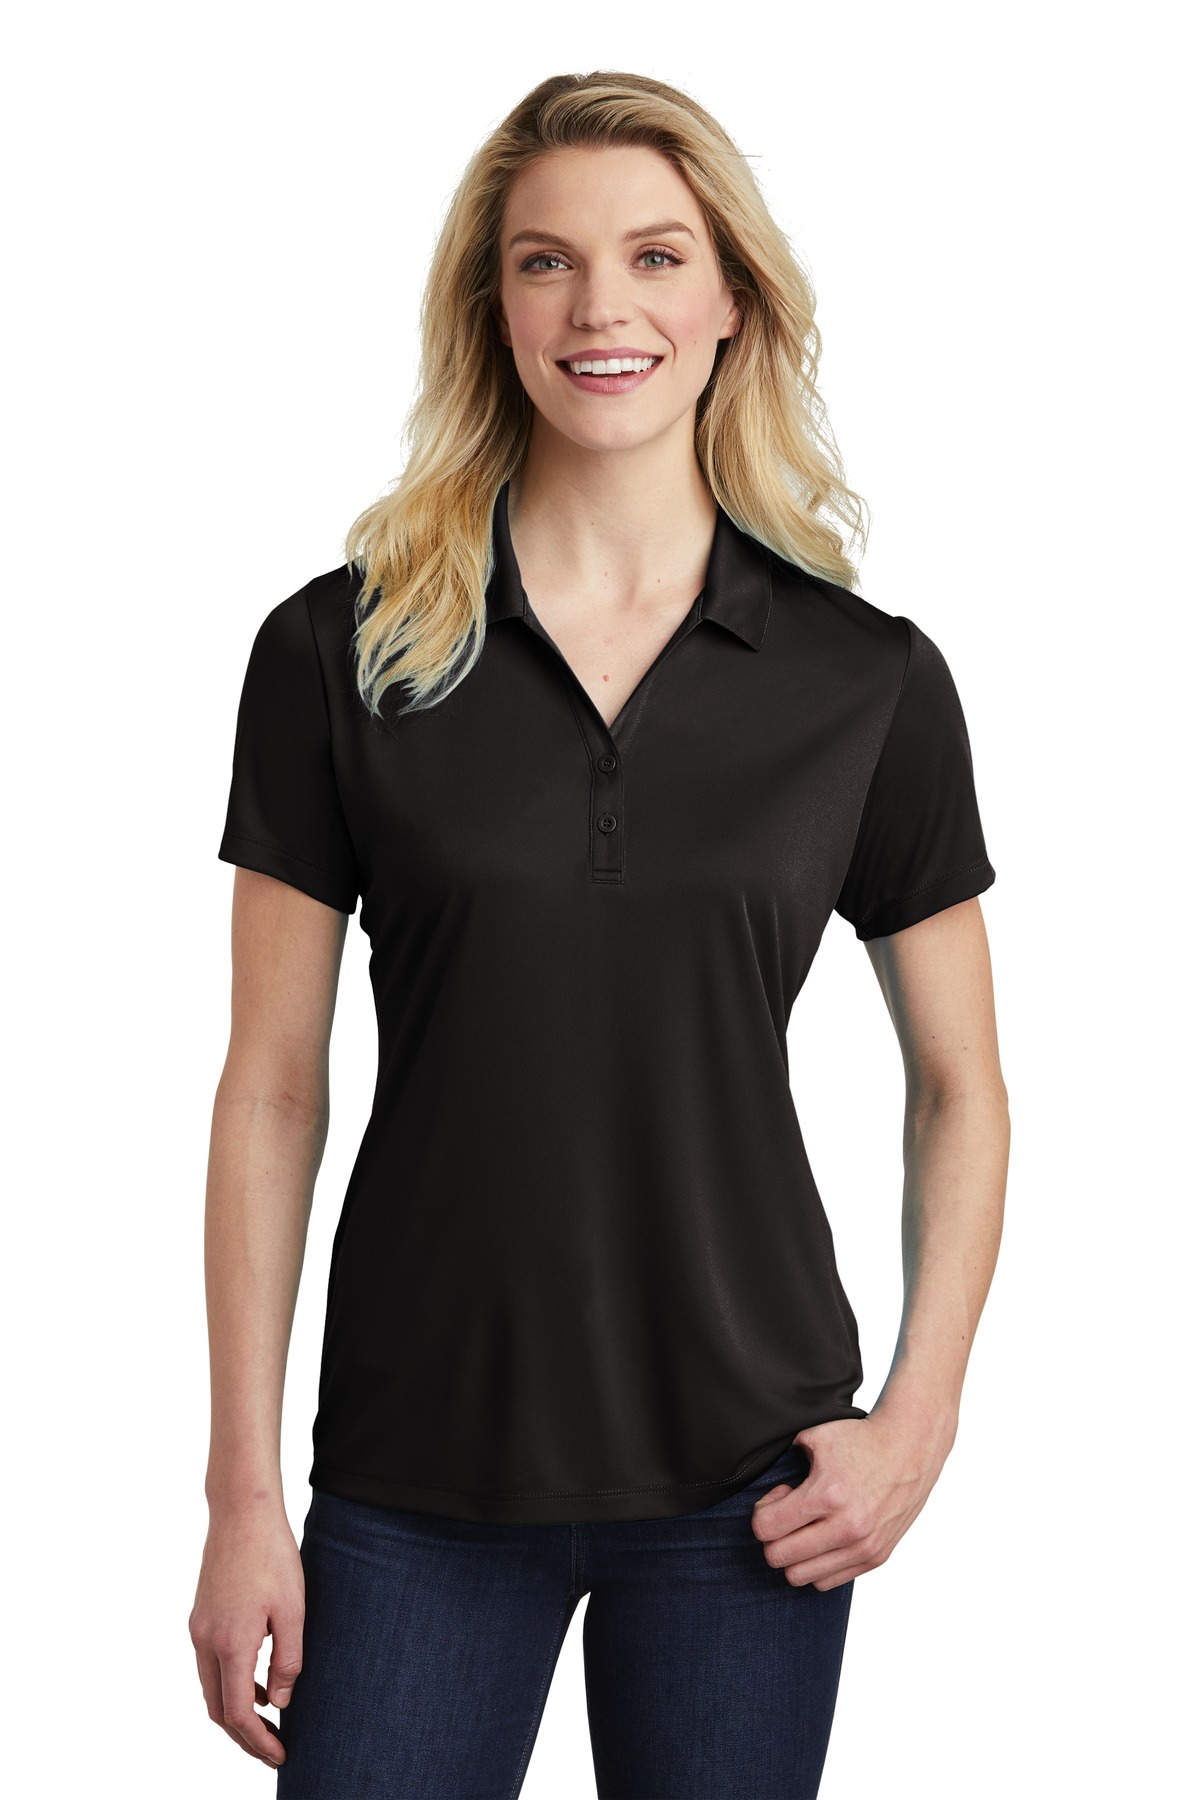 Sport-Tek  ®  Ladies PosiCharge  ®  Competitor  ™  Polo. LST550 - Black